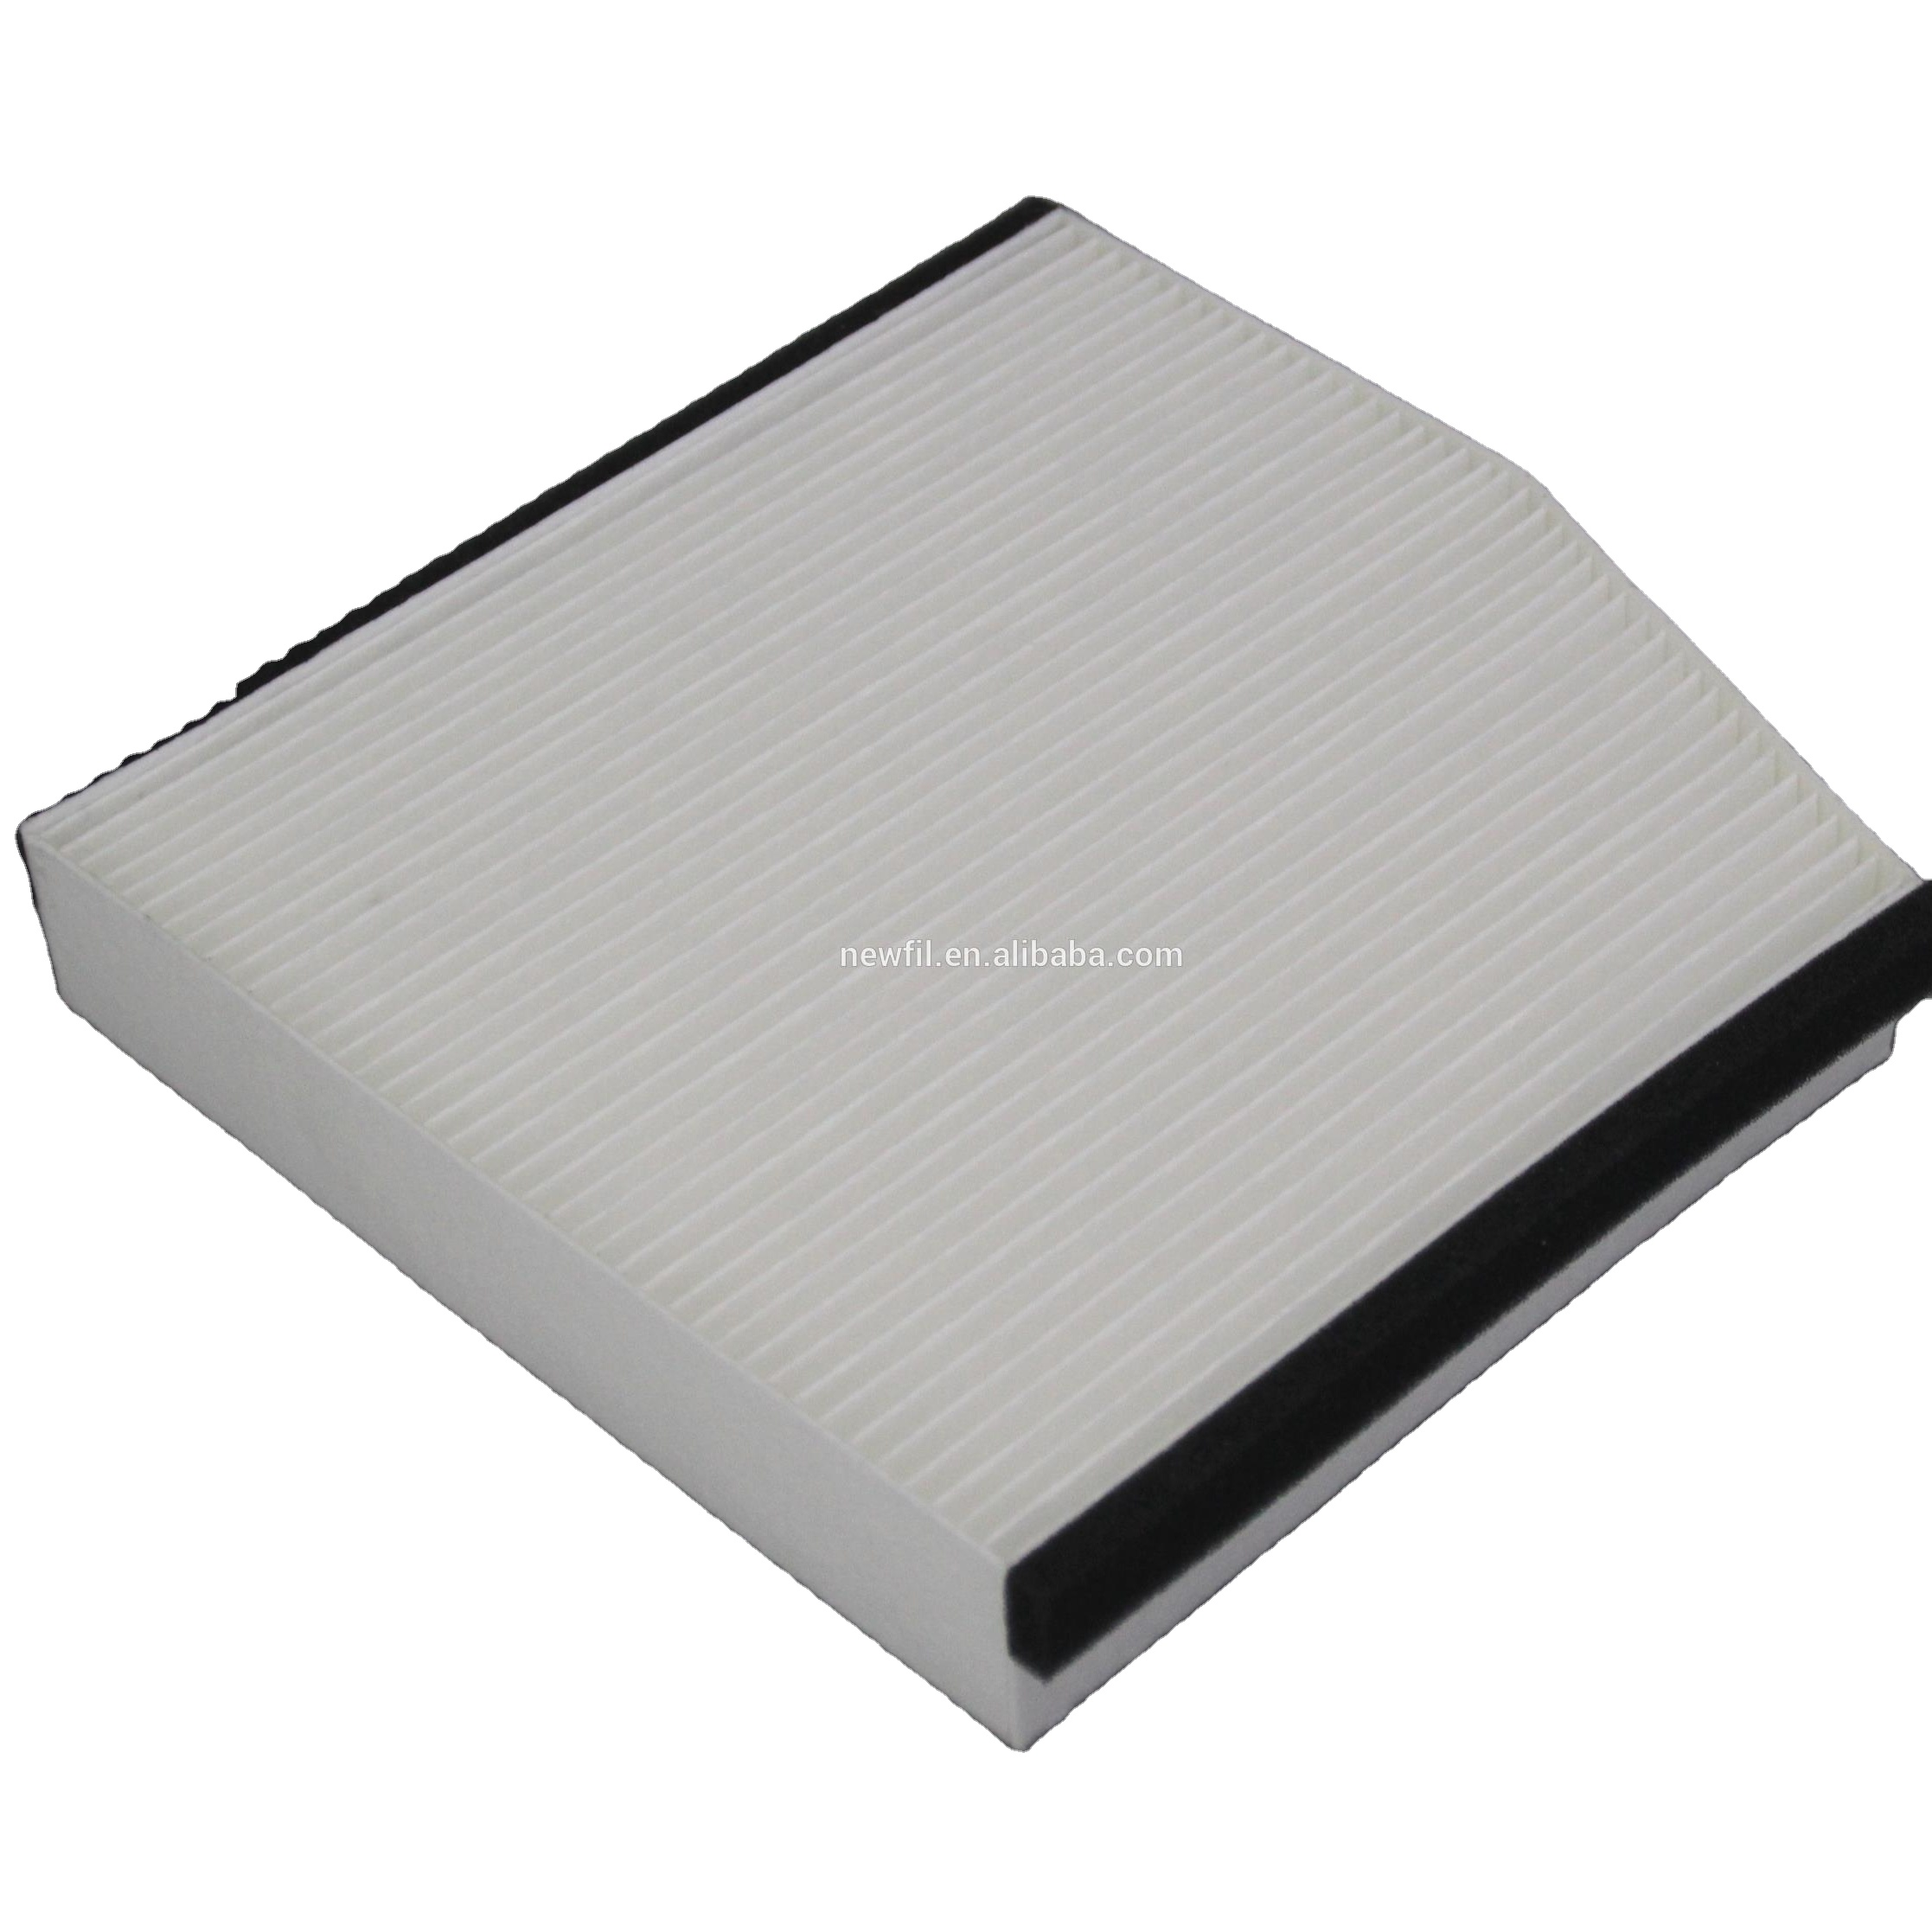 Manufacturer Cabin Air filter 246 830 00 18/ 1 987 435 505/ FP 26 <strong>007</strong> /FP 26 <strong>007</strong>/1 for Benz